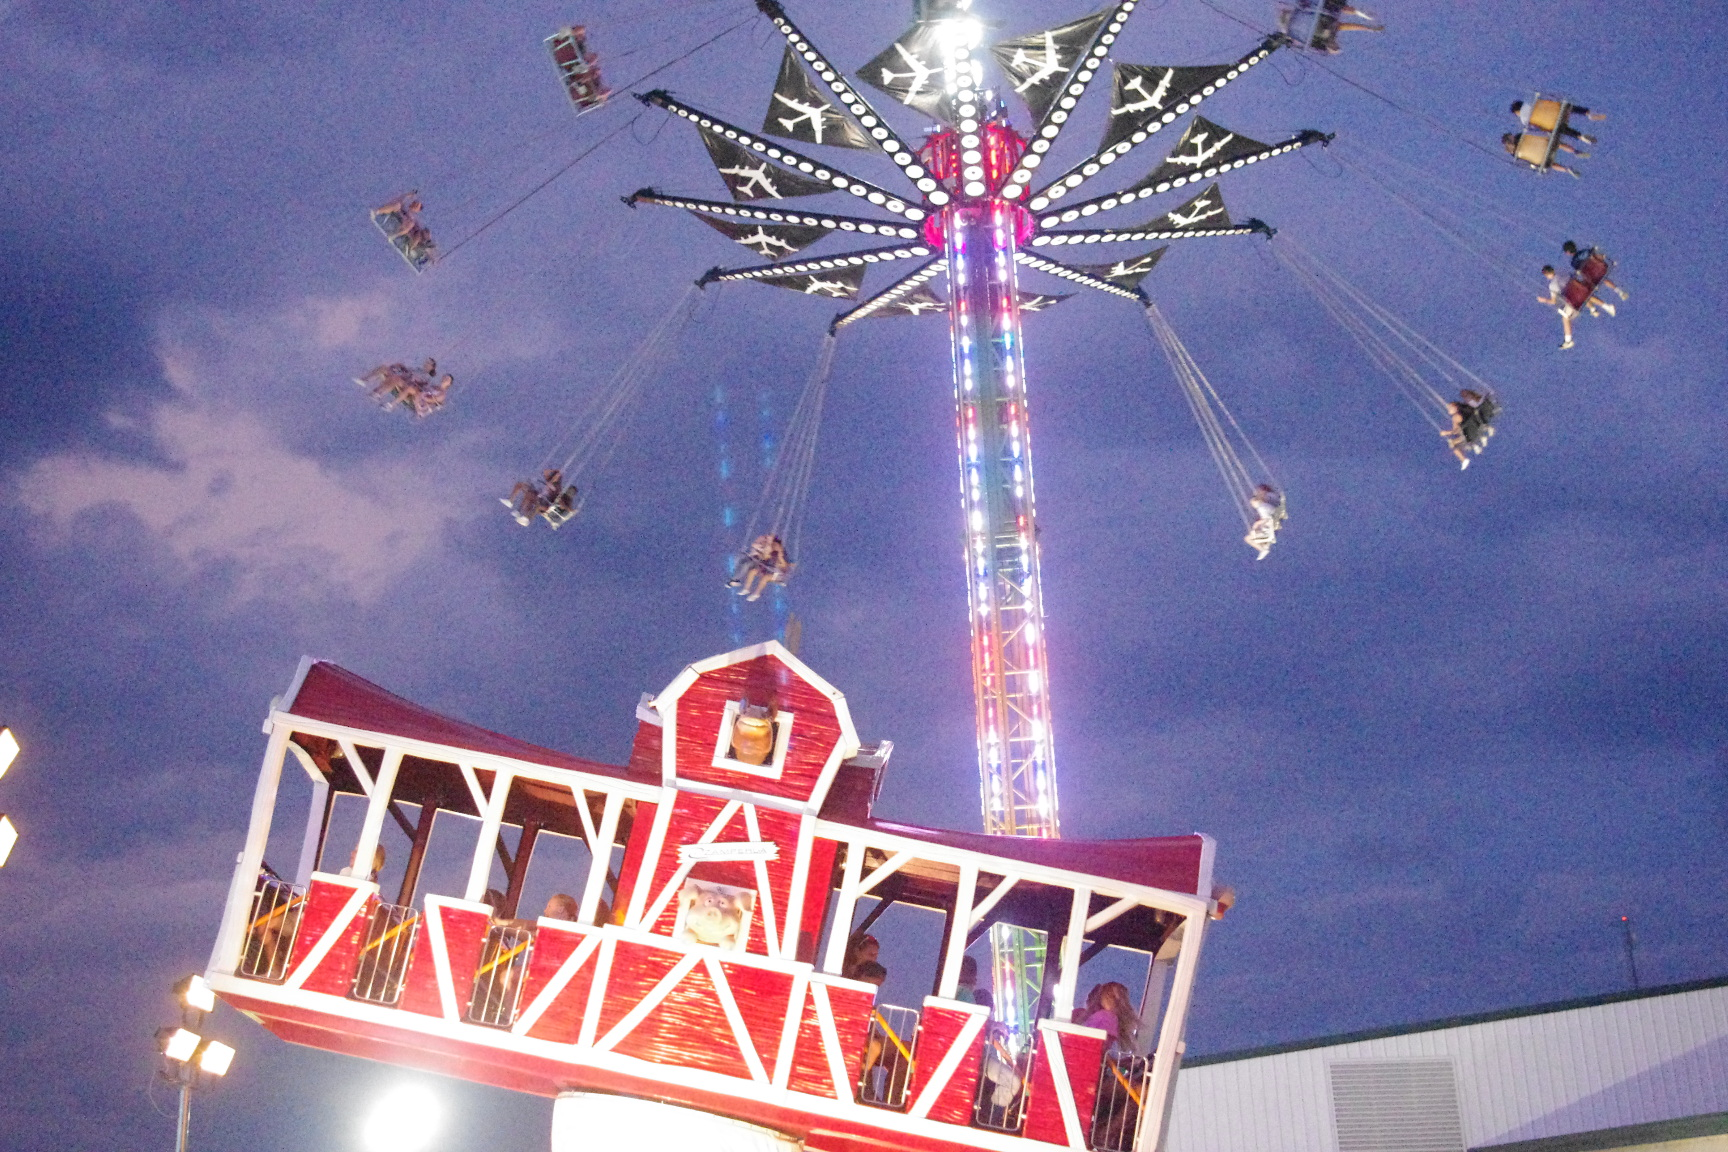 Tuesday, Wednesday schedule for the Williamson County Fair